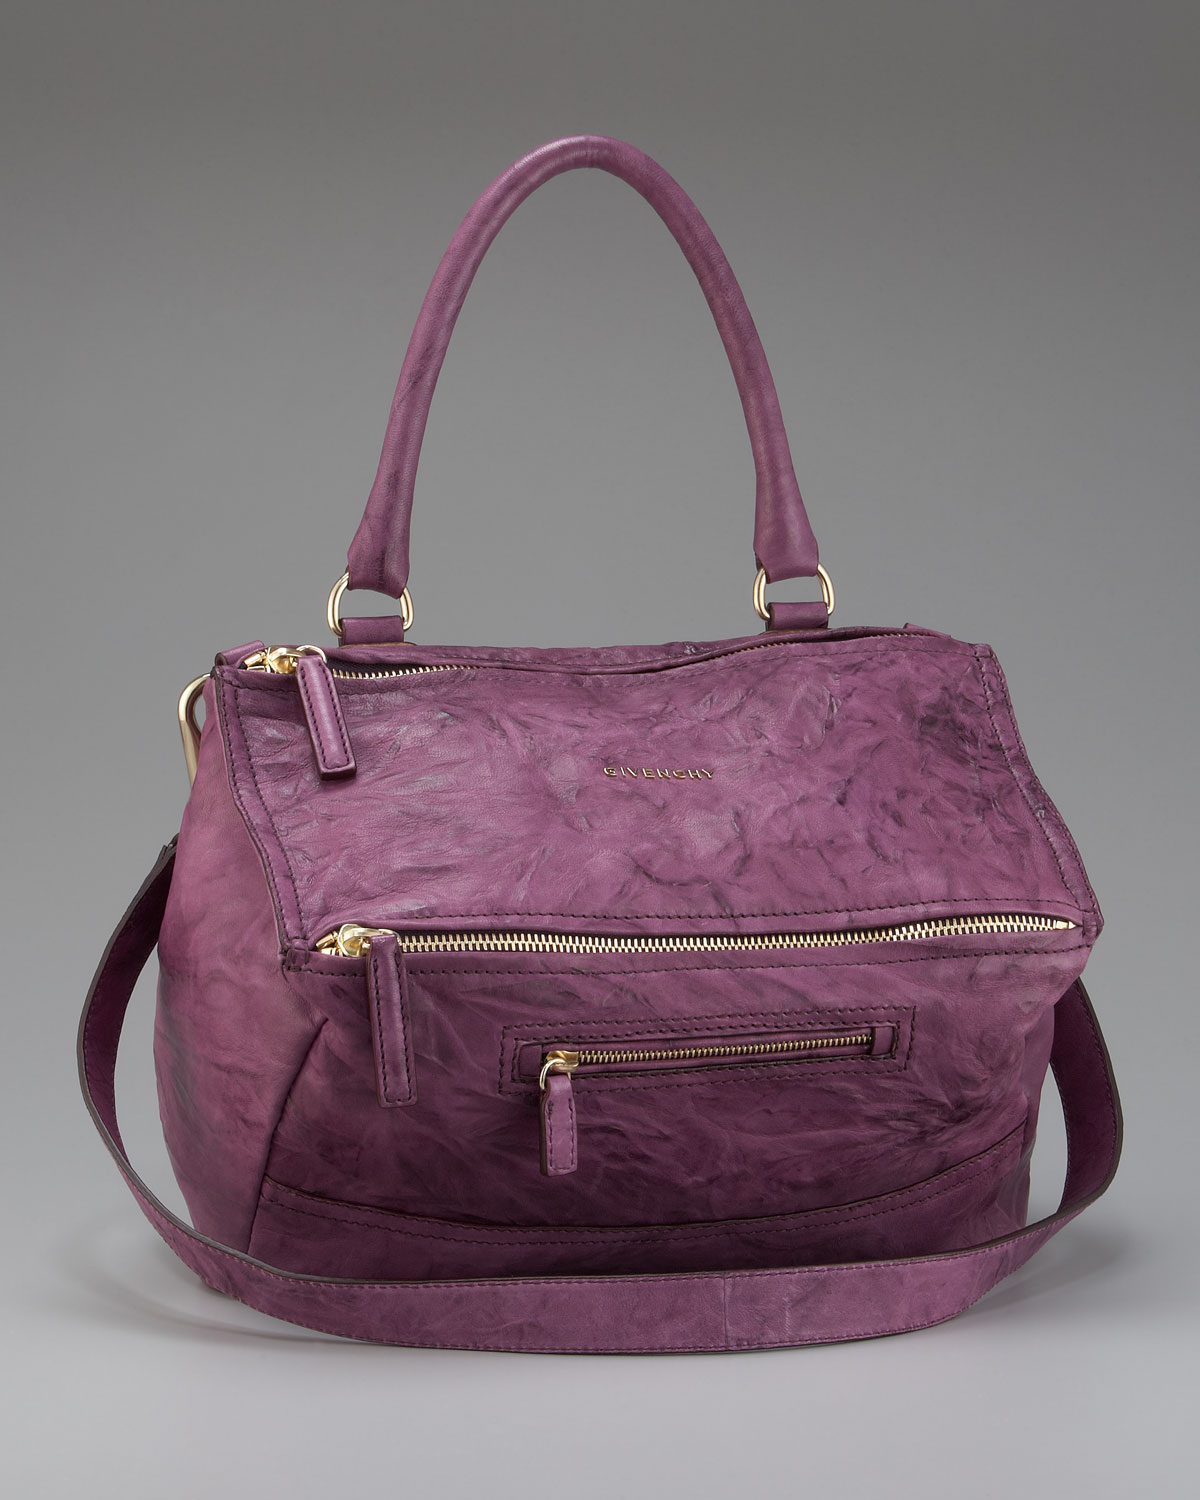 Lyst - Givenchy Pandora Pepe Shoulder Bag Medium in Purple 15c44156c8b59